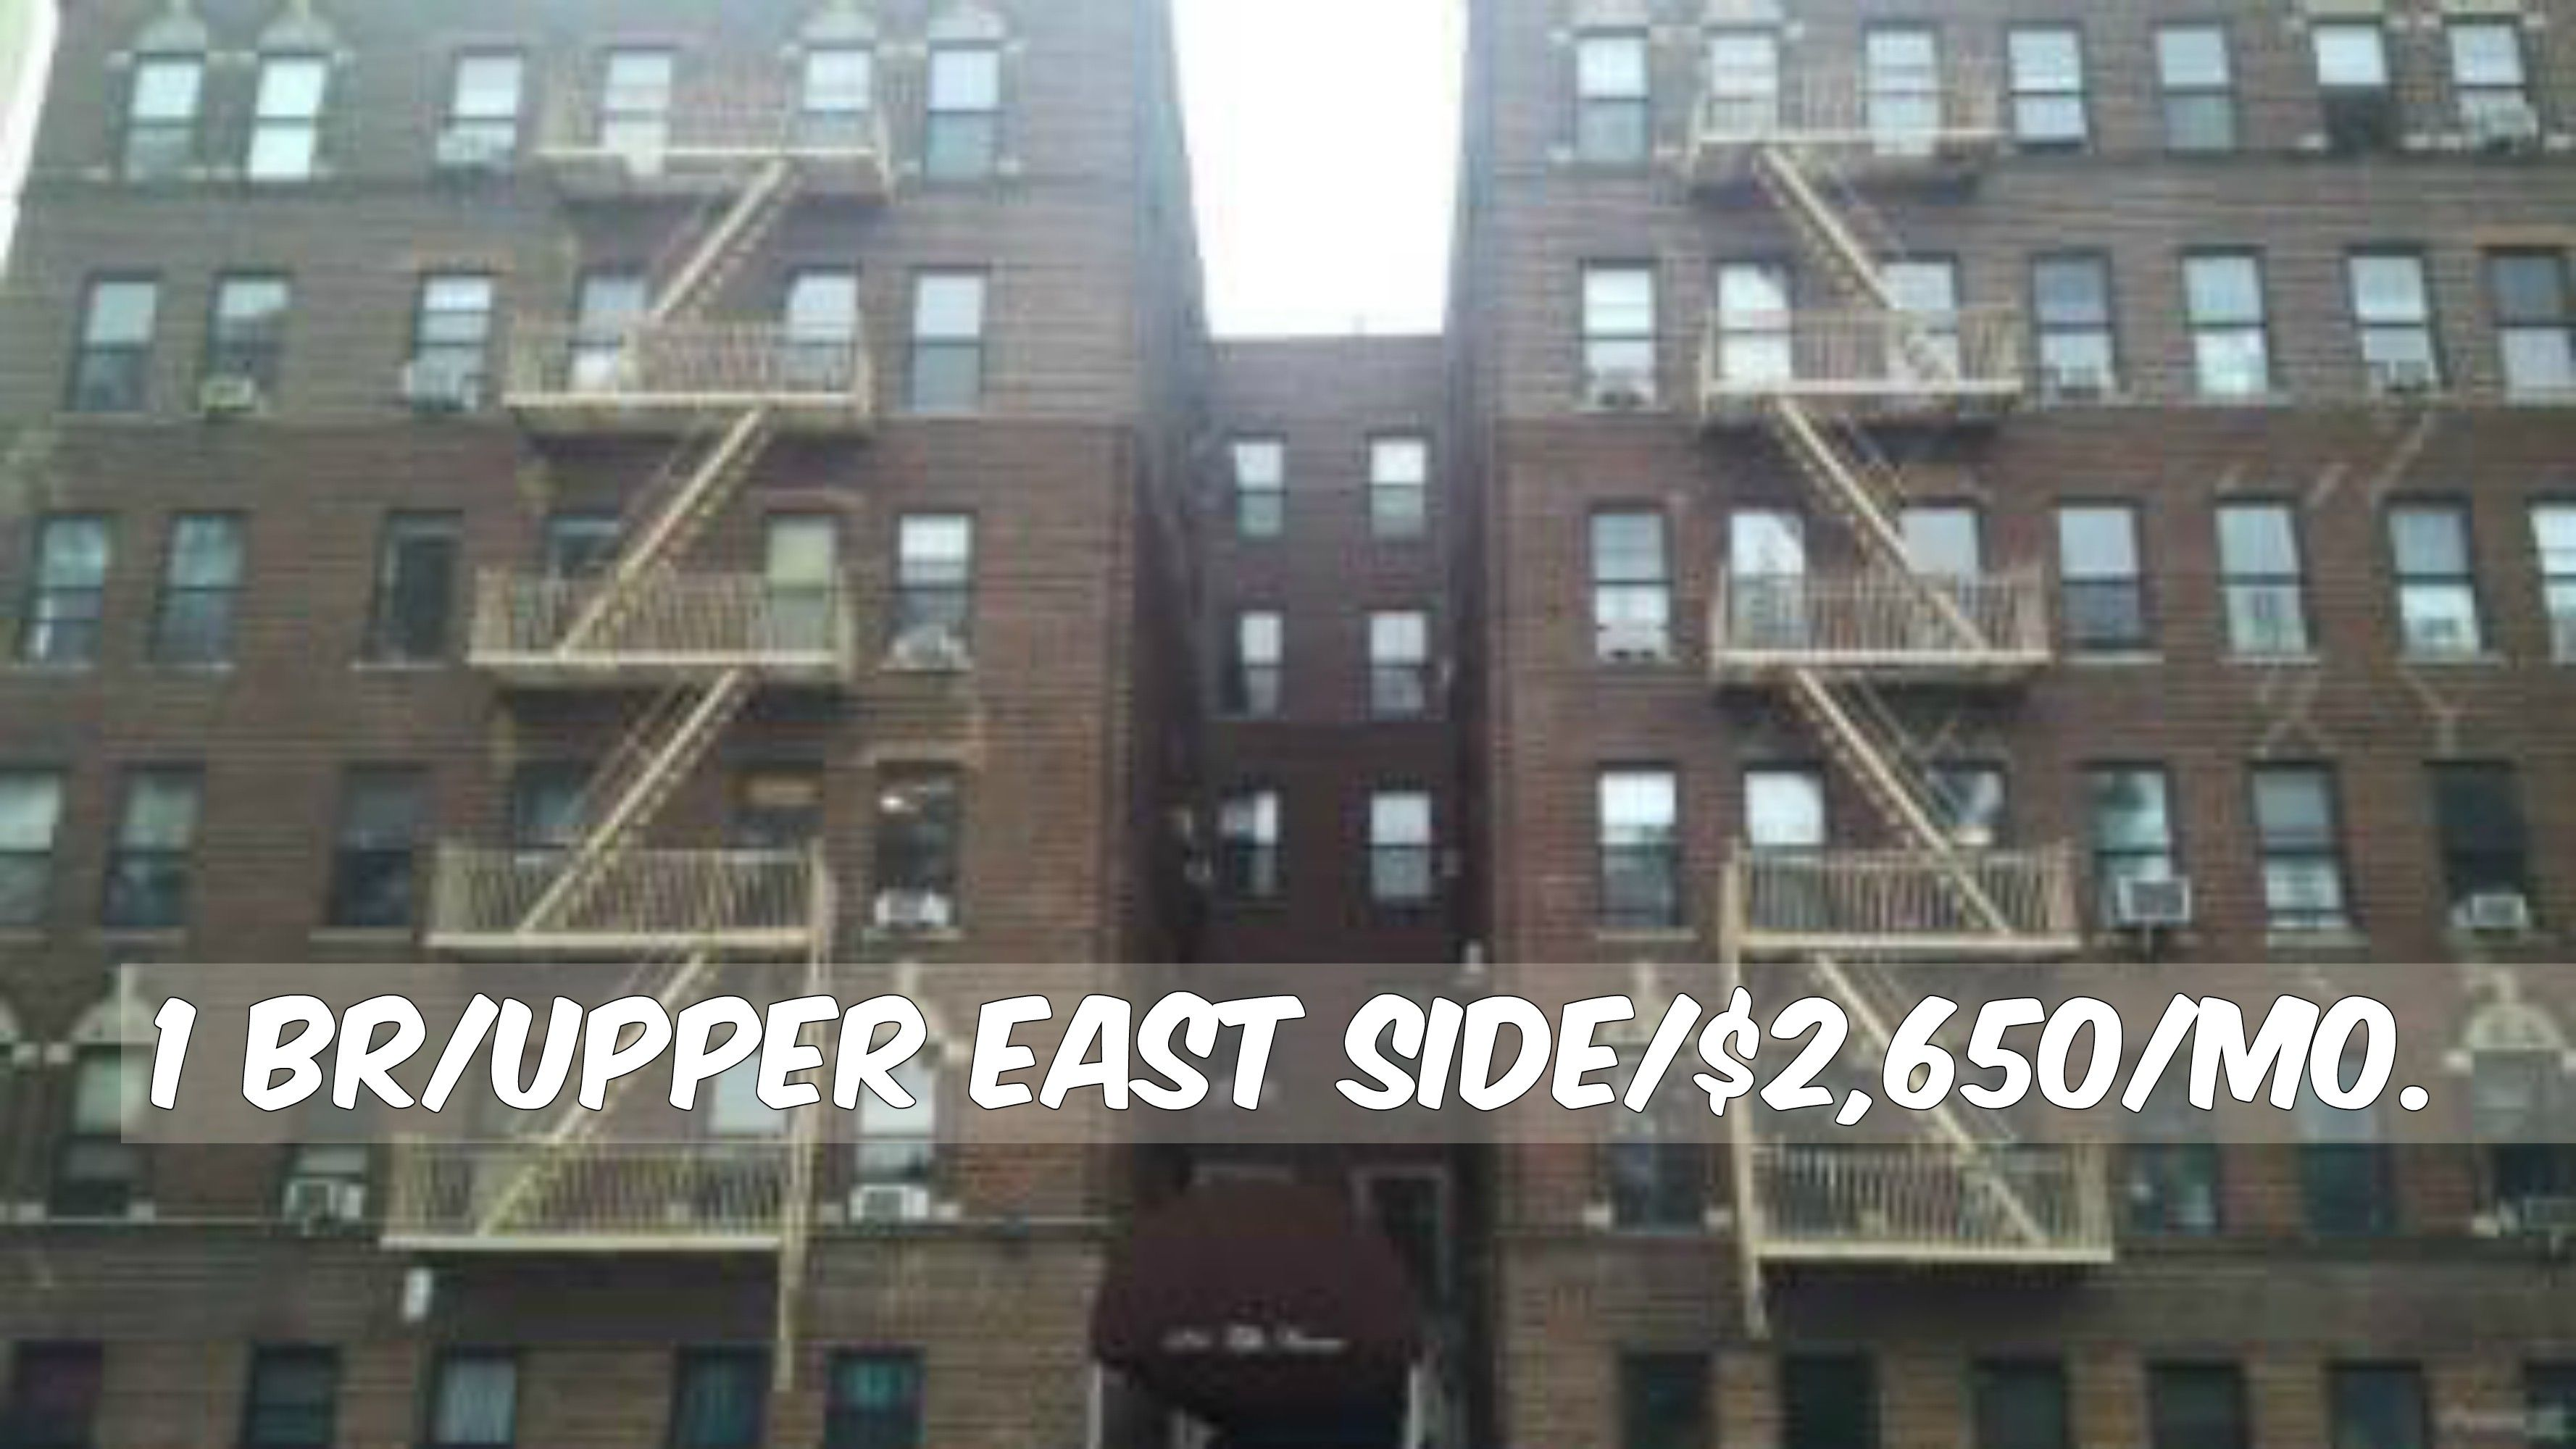 1 Br Apt For Rent In Upper East Side At 2 650 Mo Elevator